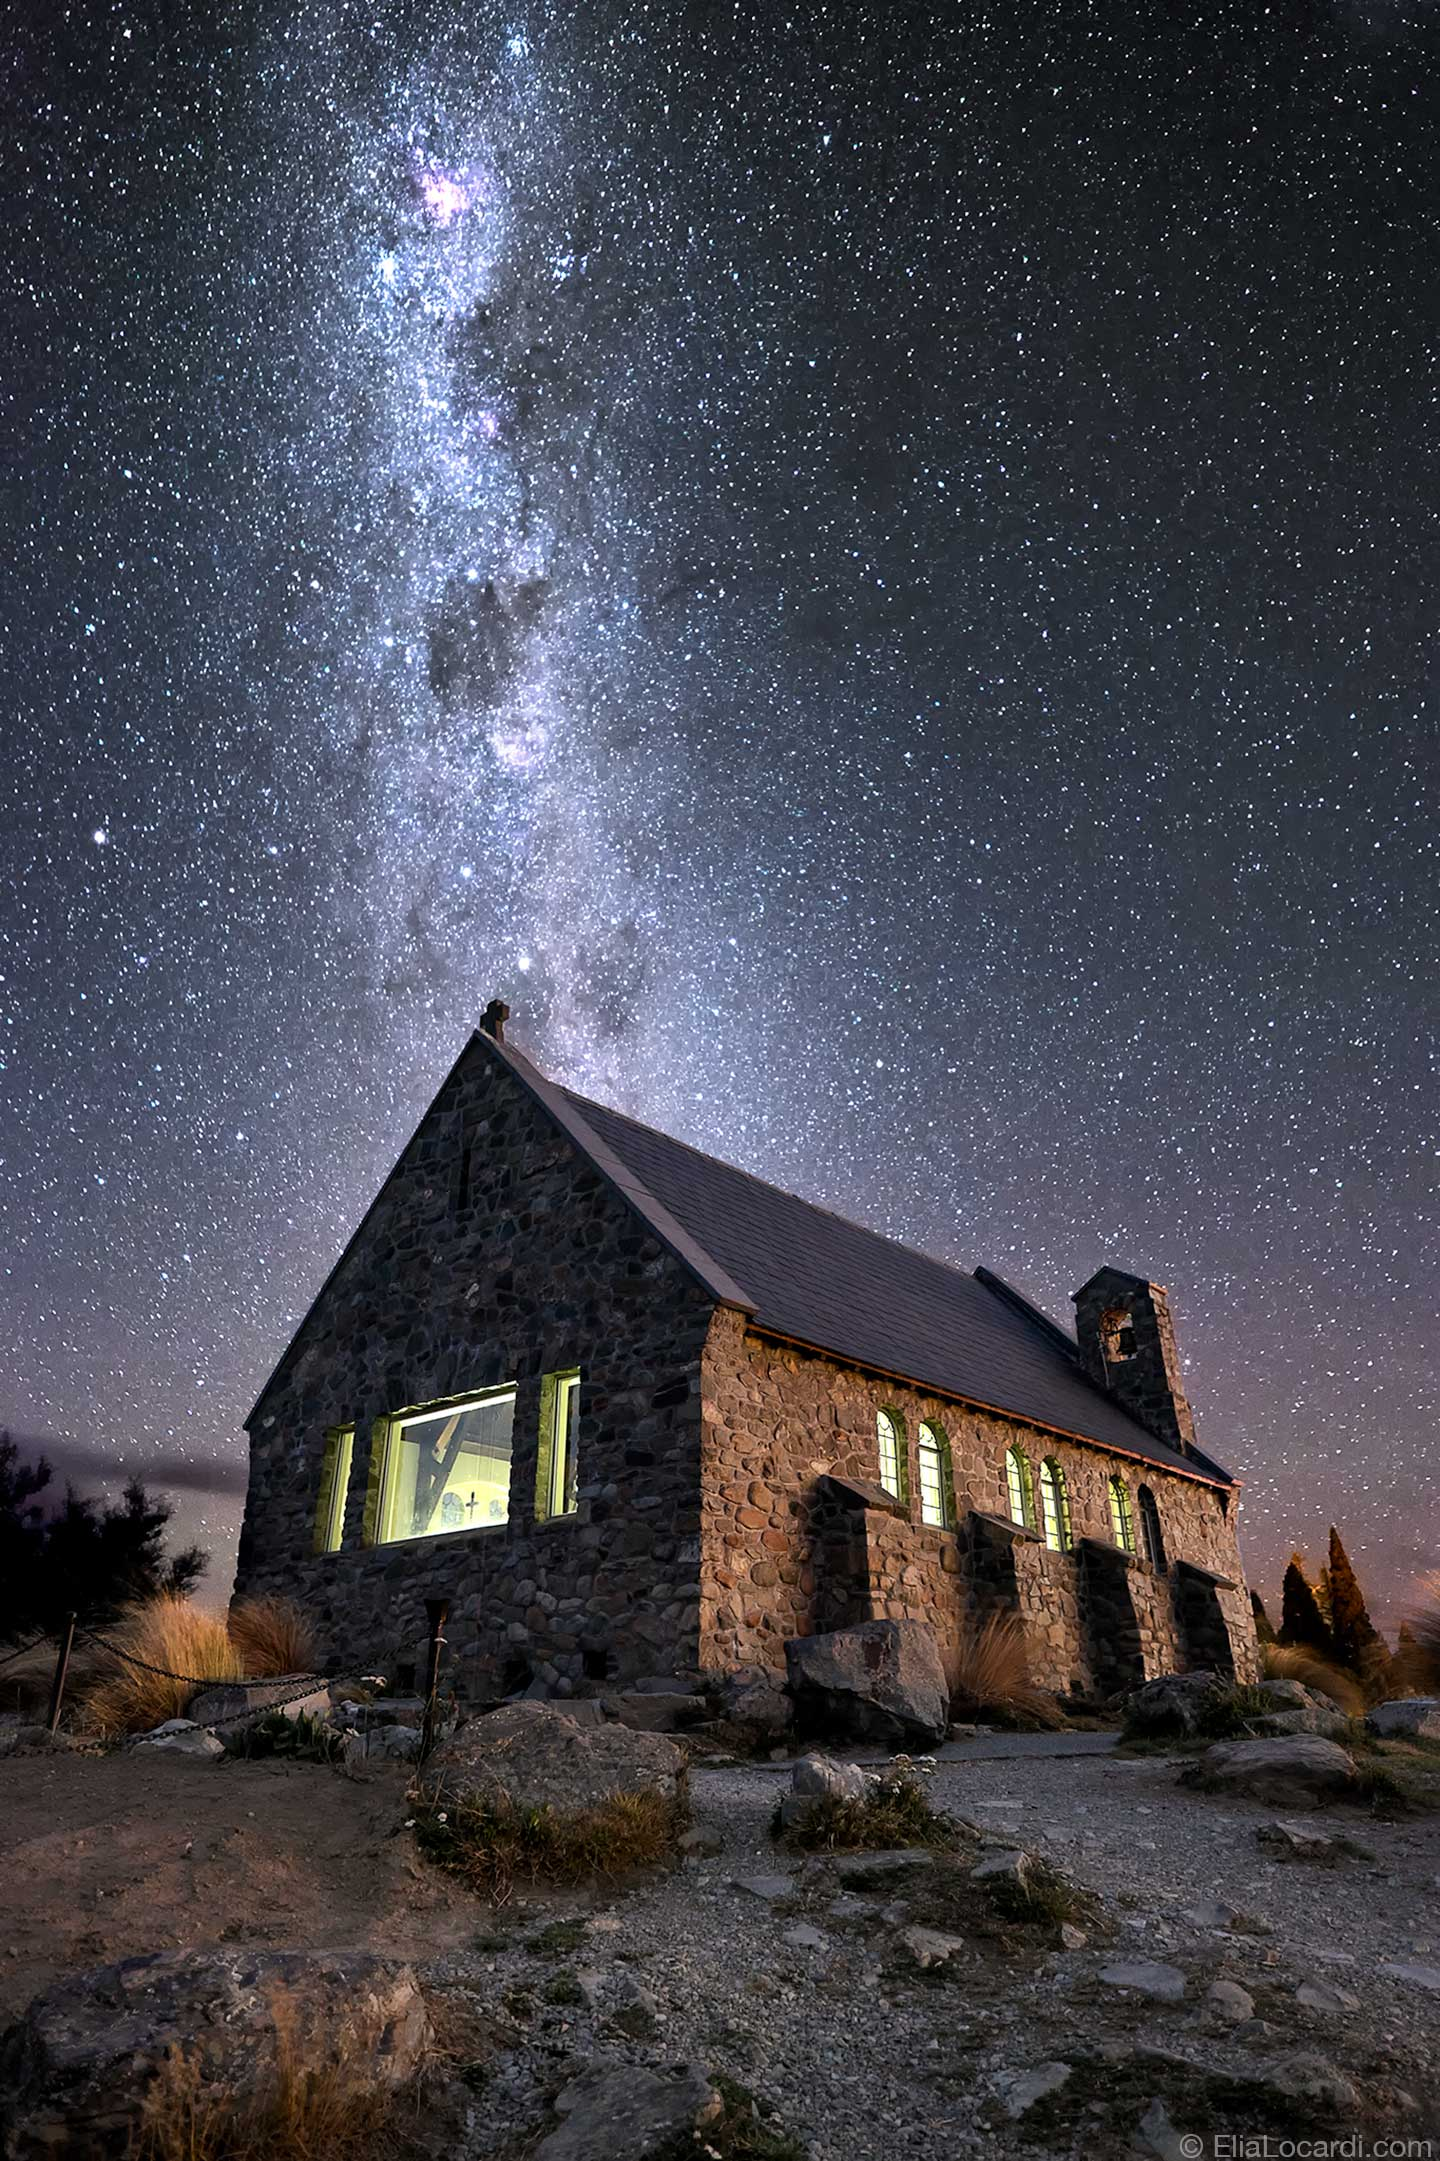 The Milky Way Galaxy dances above the Churh of the Good Shepherd in New Zealand